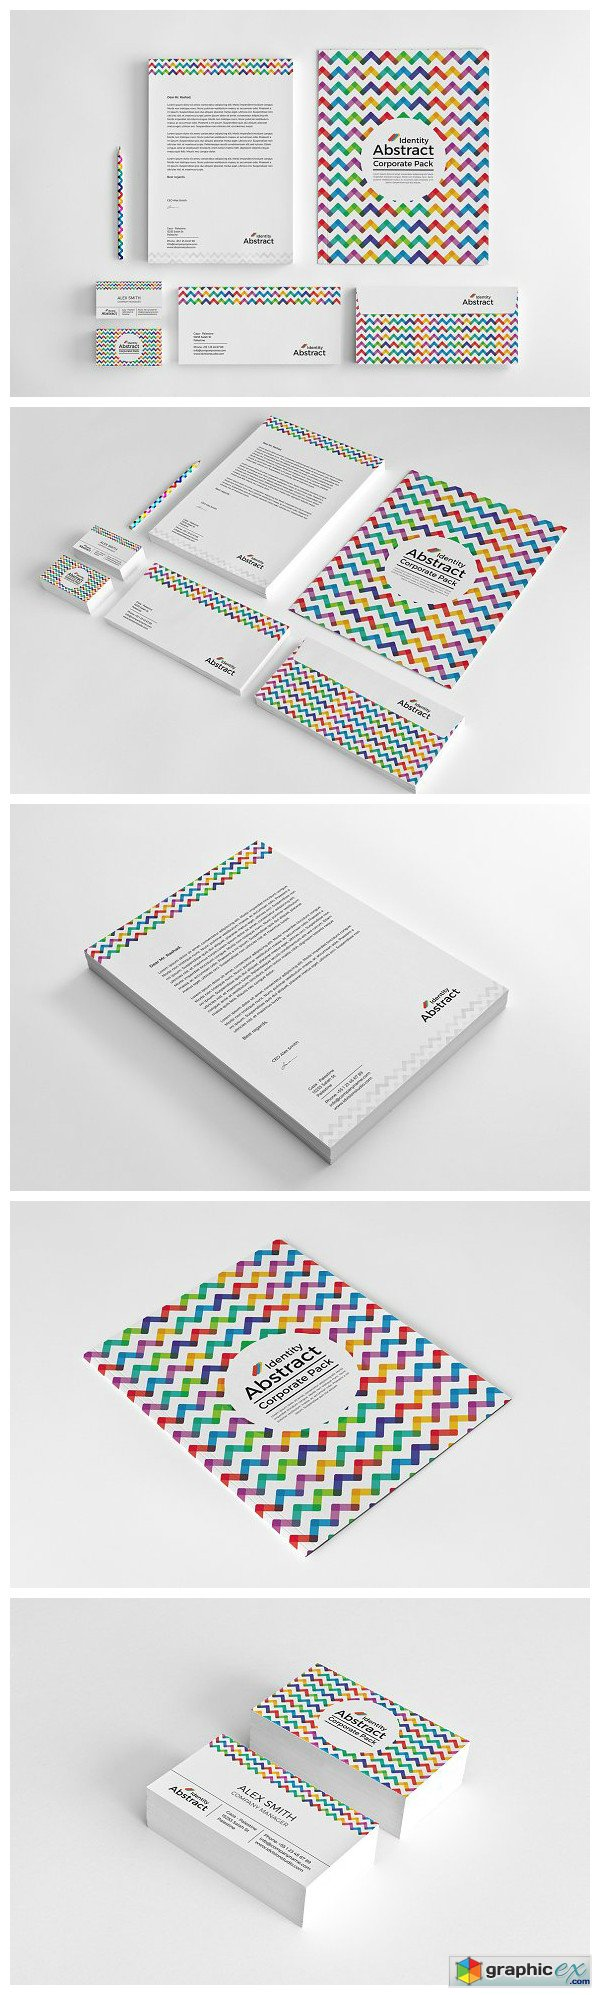 Stationery Pack Vol 02